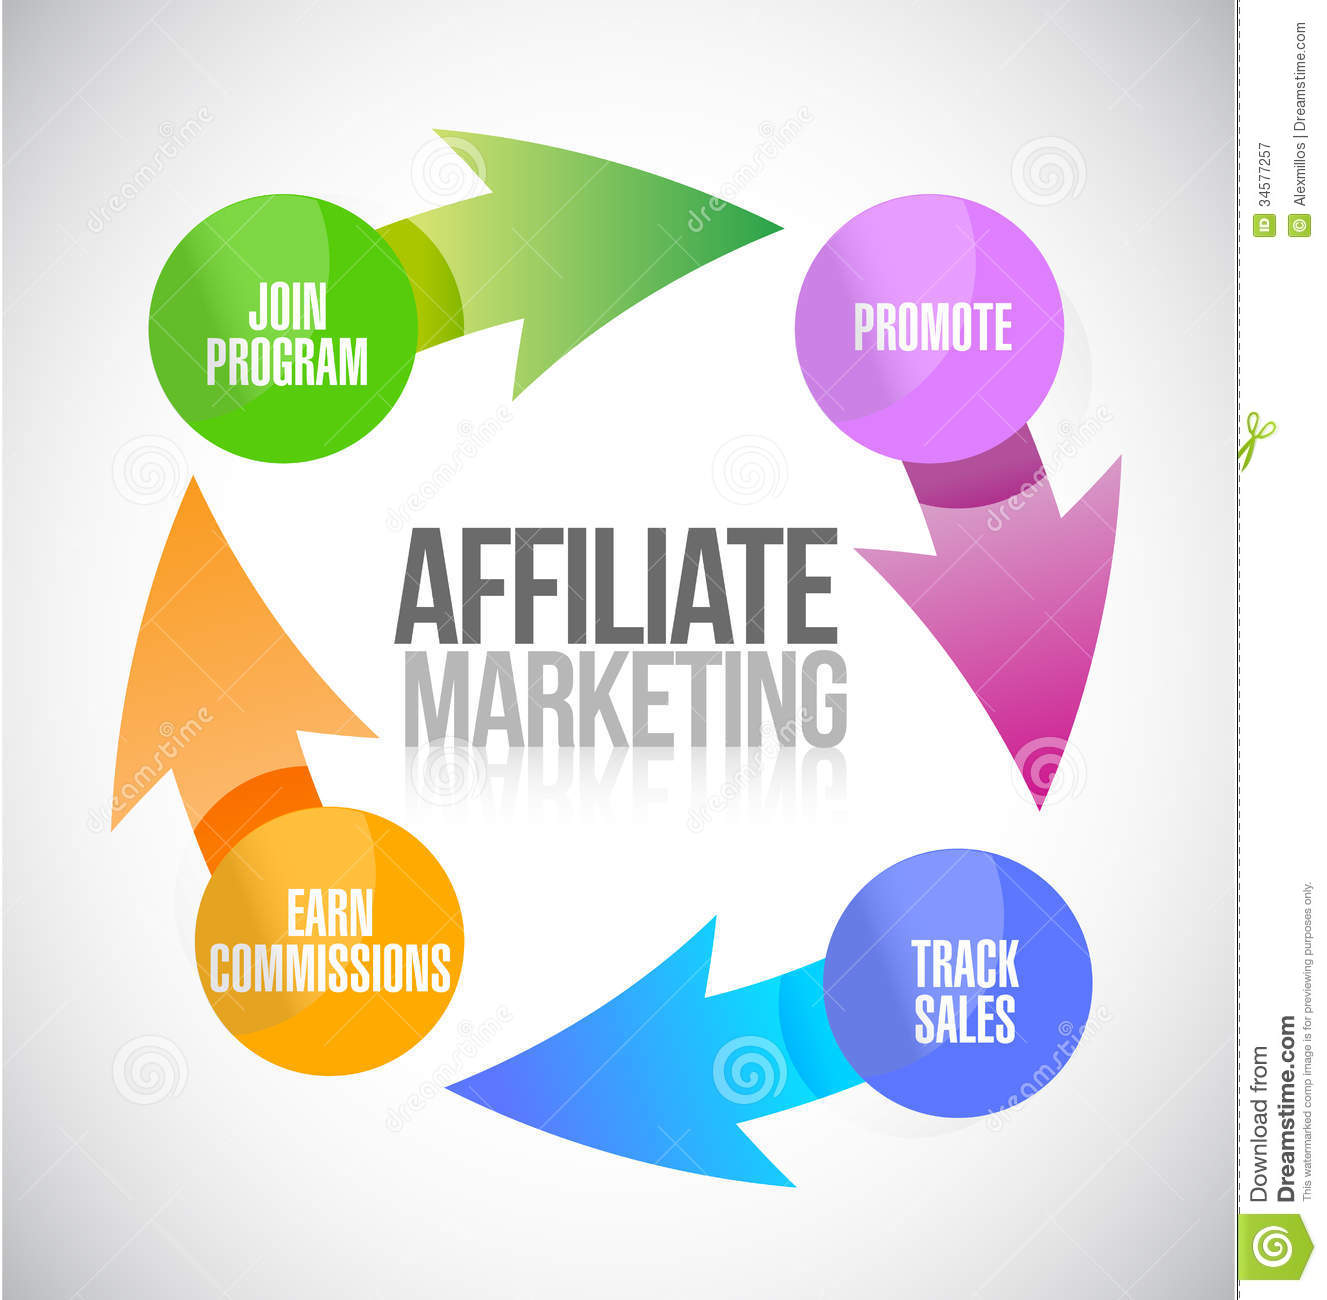 Money Wallpaper Hd 3d Affiliate Marketing Cycle Illustration Design Royalty Free